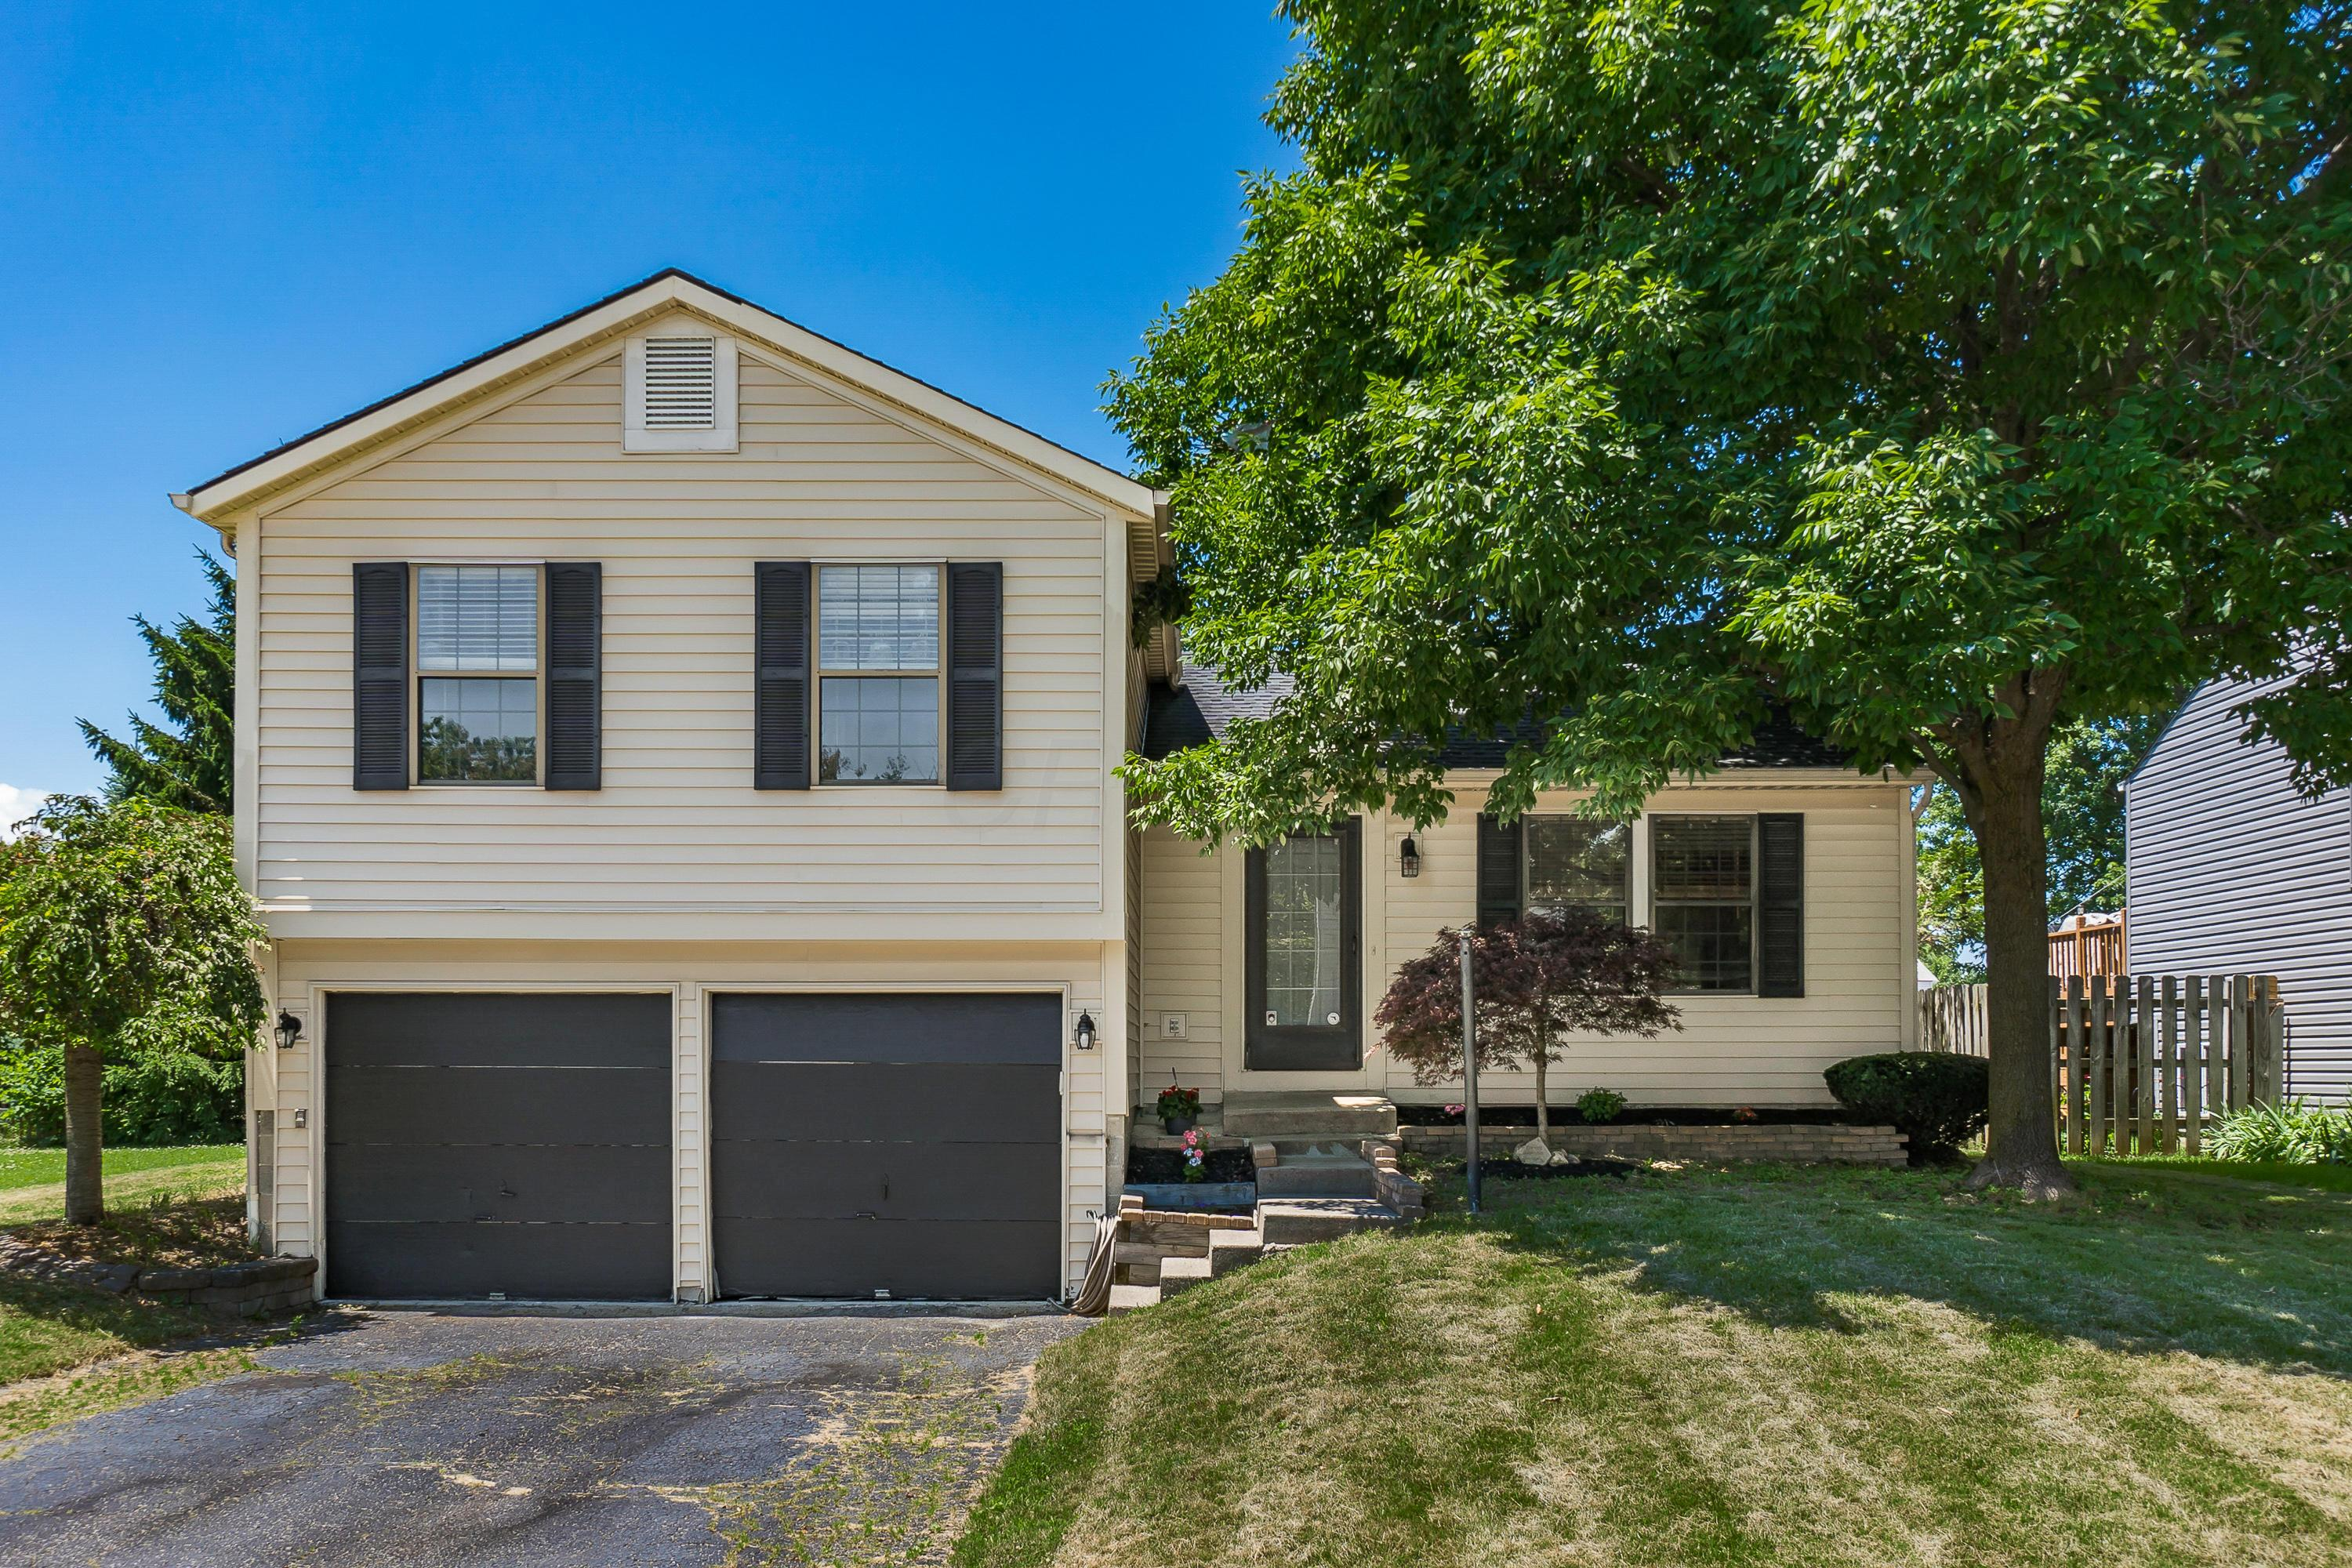 Photo of 8607 Broadacre Drive, Powell, OH 43065